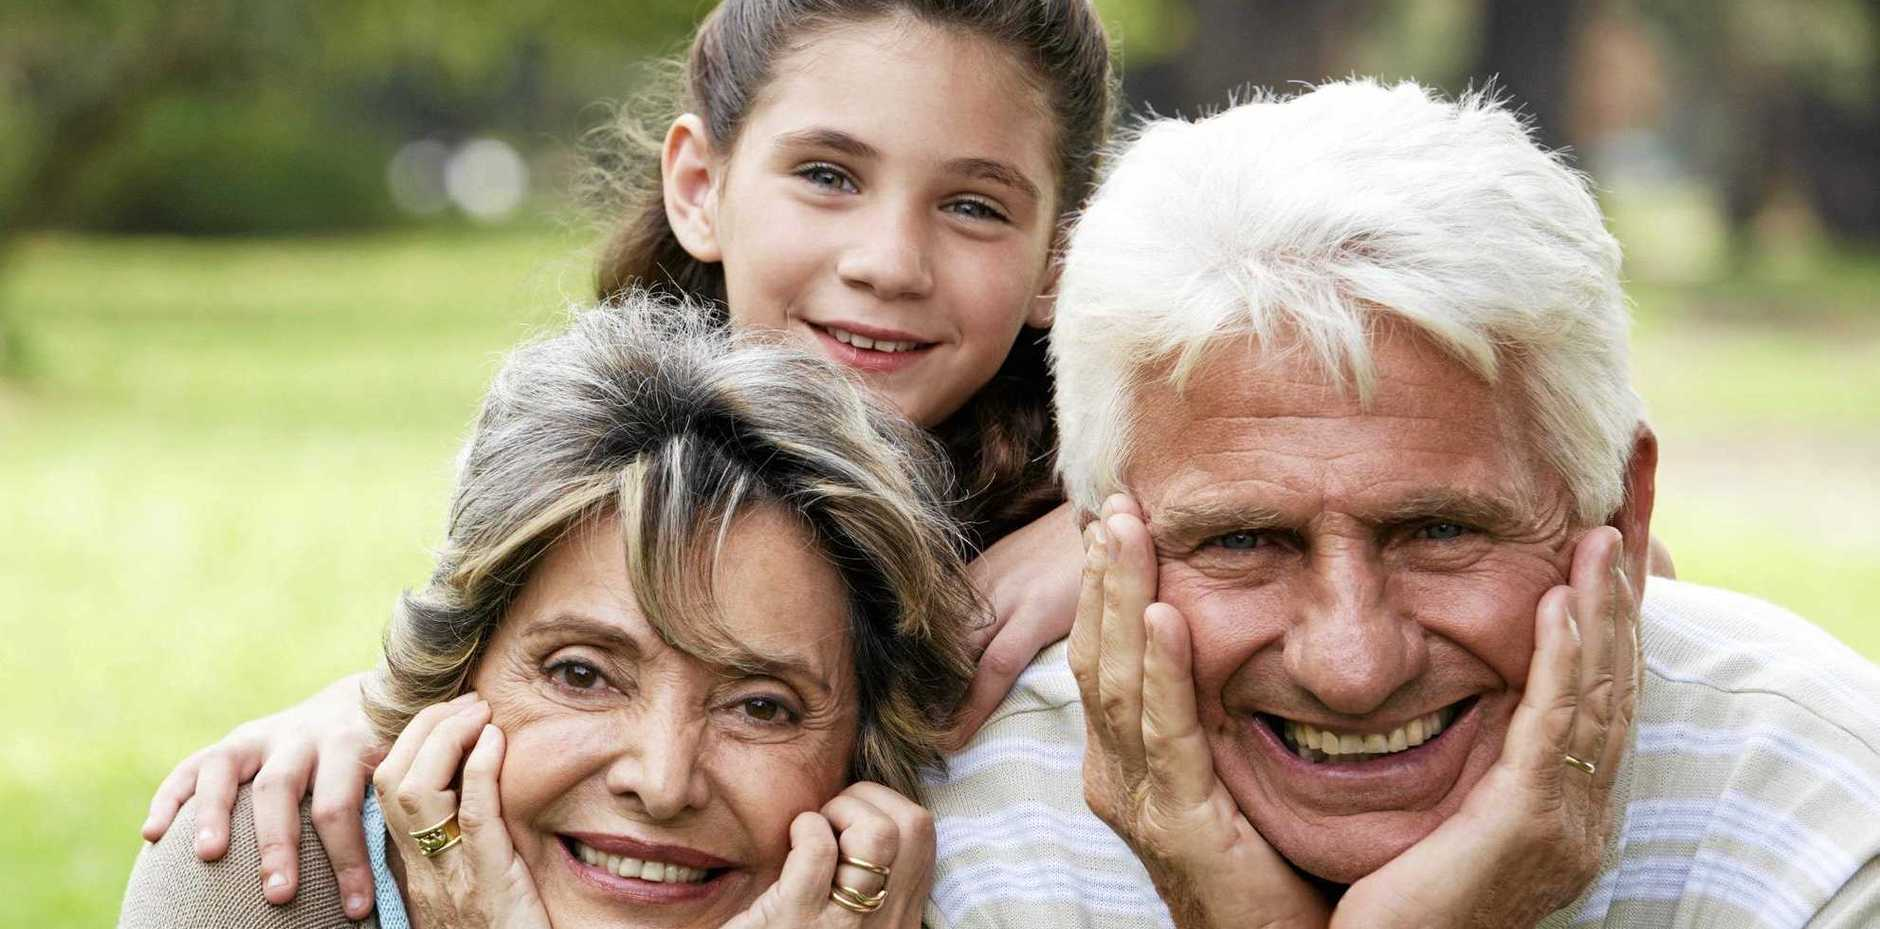 STAYING YOUNG: You can have a lot of fun with your grandchildren and become more active by exploring the world together.